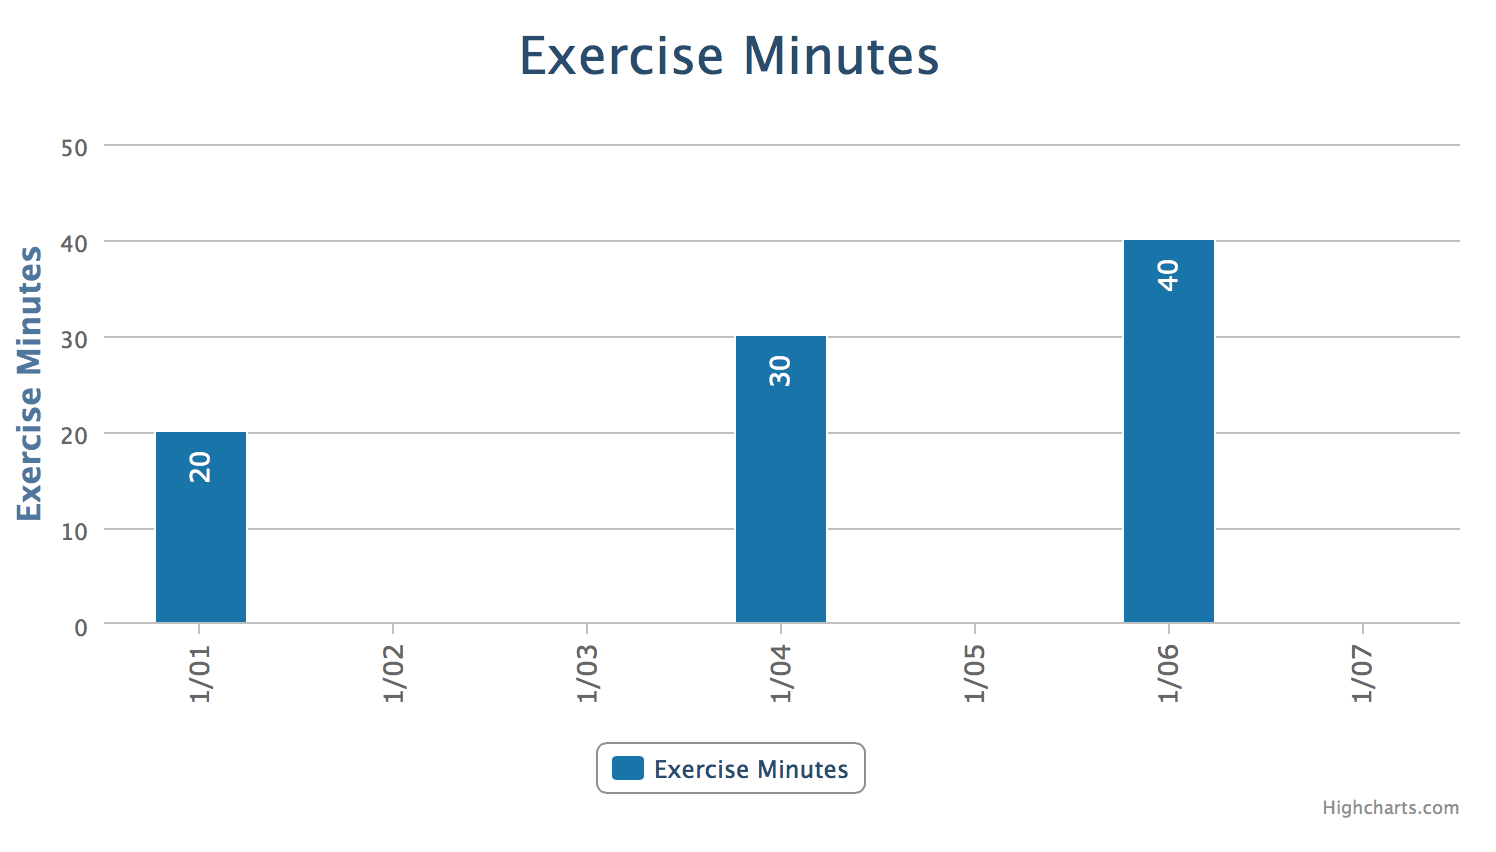 Exercise minutes in the last week